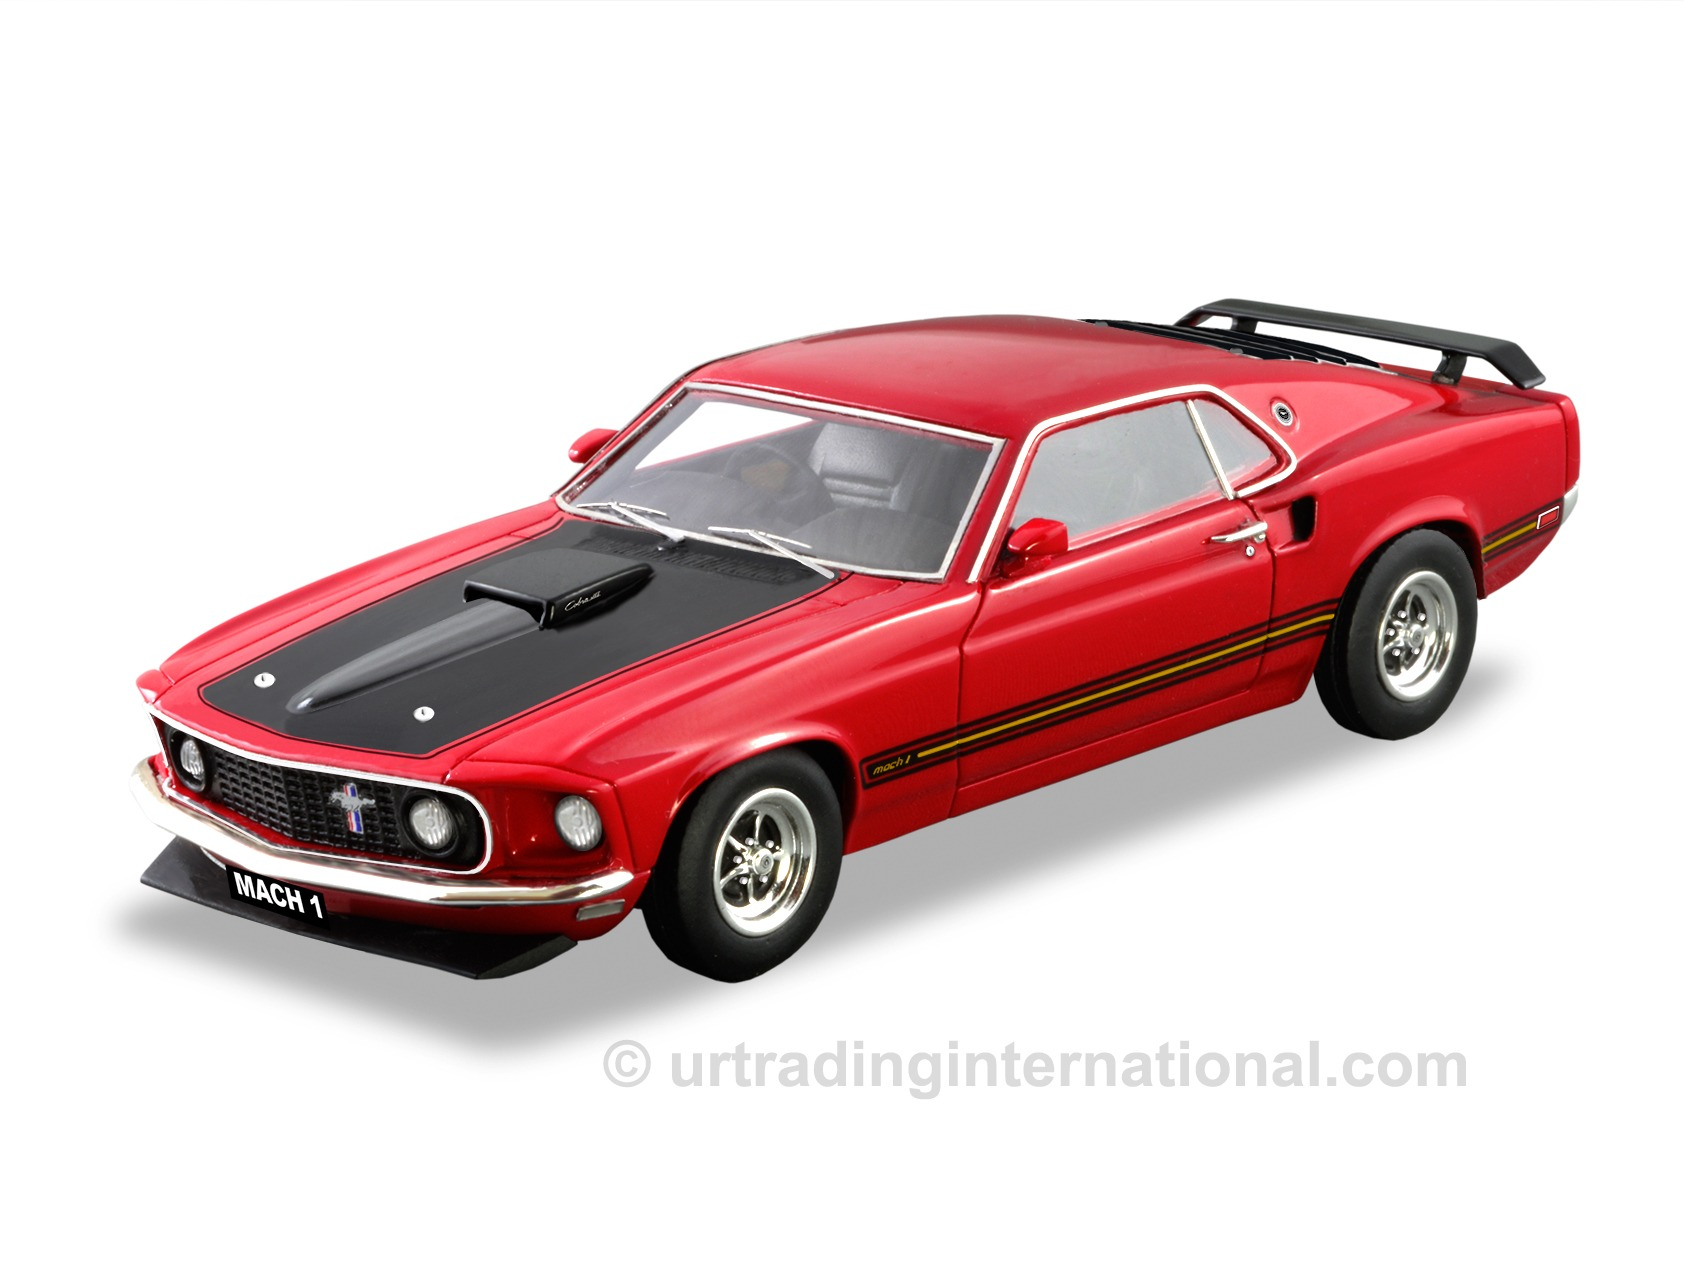 1969 Ford Mustang Mach 1 – Red